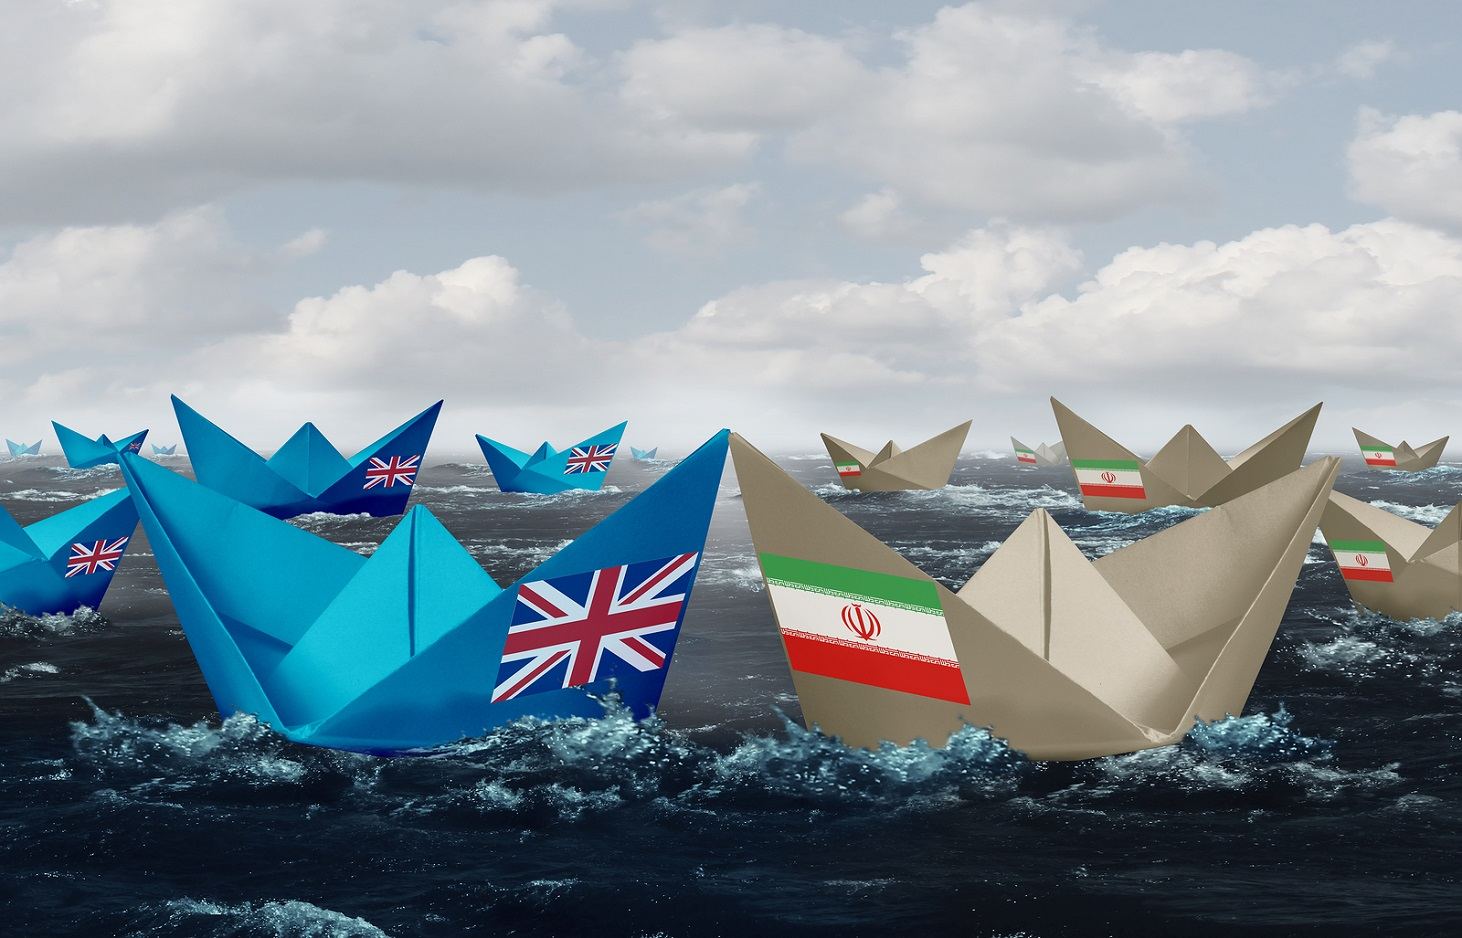 United Kingdom and Iran confrontation in the Persian gulf as a crisis in the middle east as Great Britain versus the Iranian government as paper boats representing shipping lane risk in a 3D illustration style.